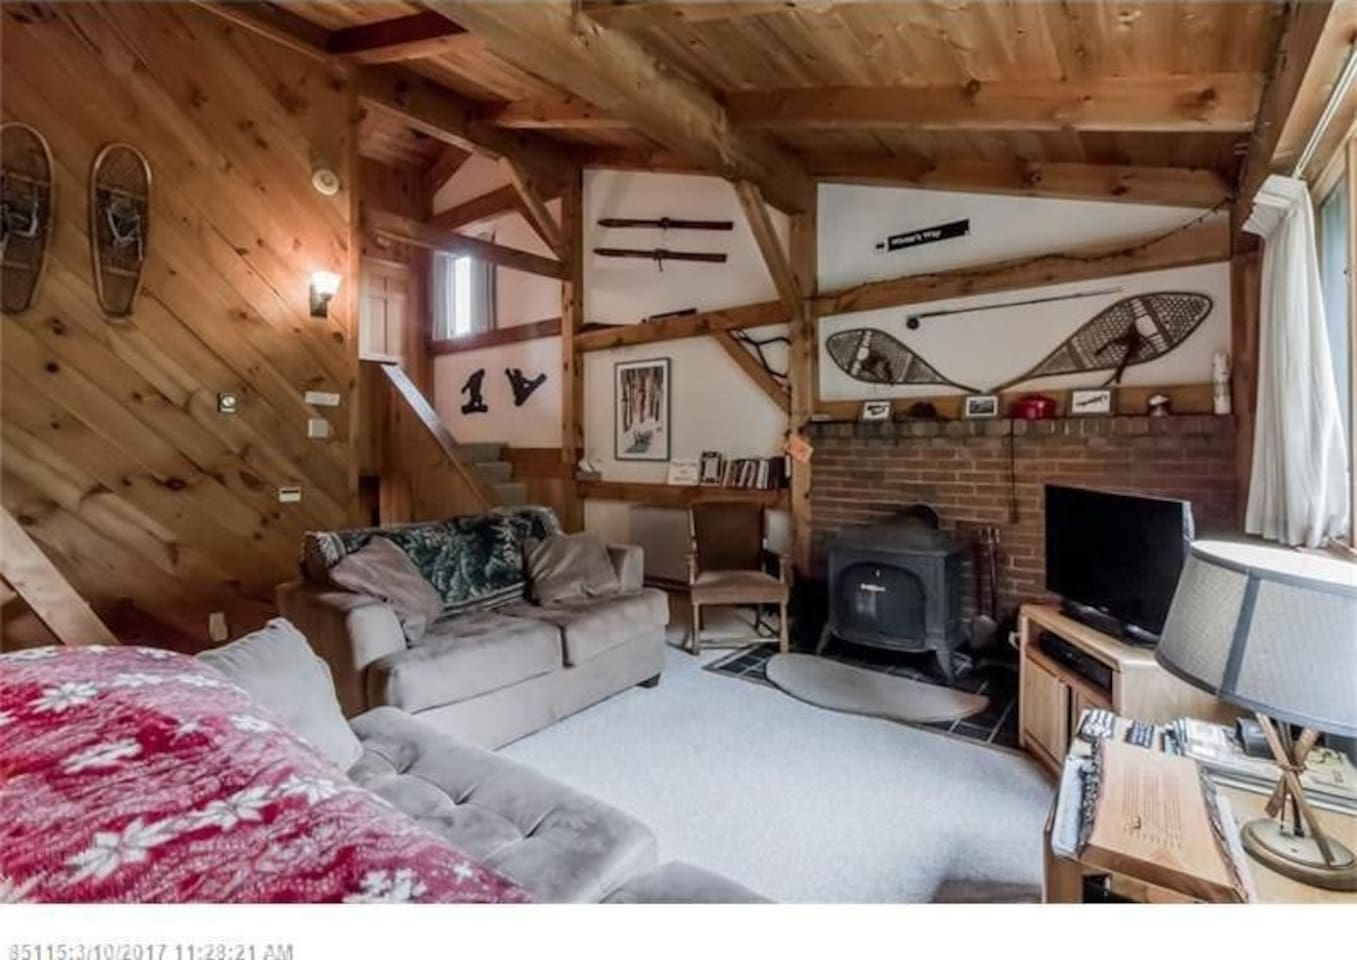 Cozy, spacious great room with an open floor plan and toasty wood stove!